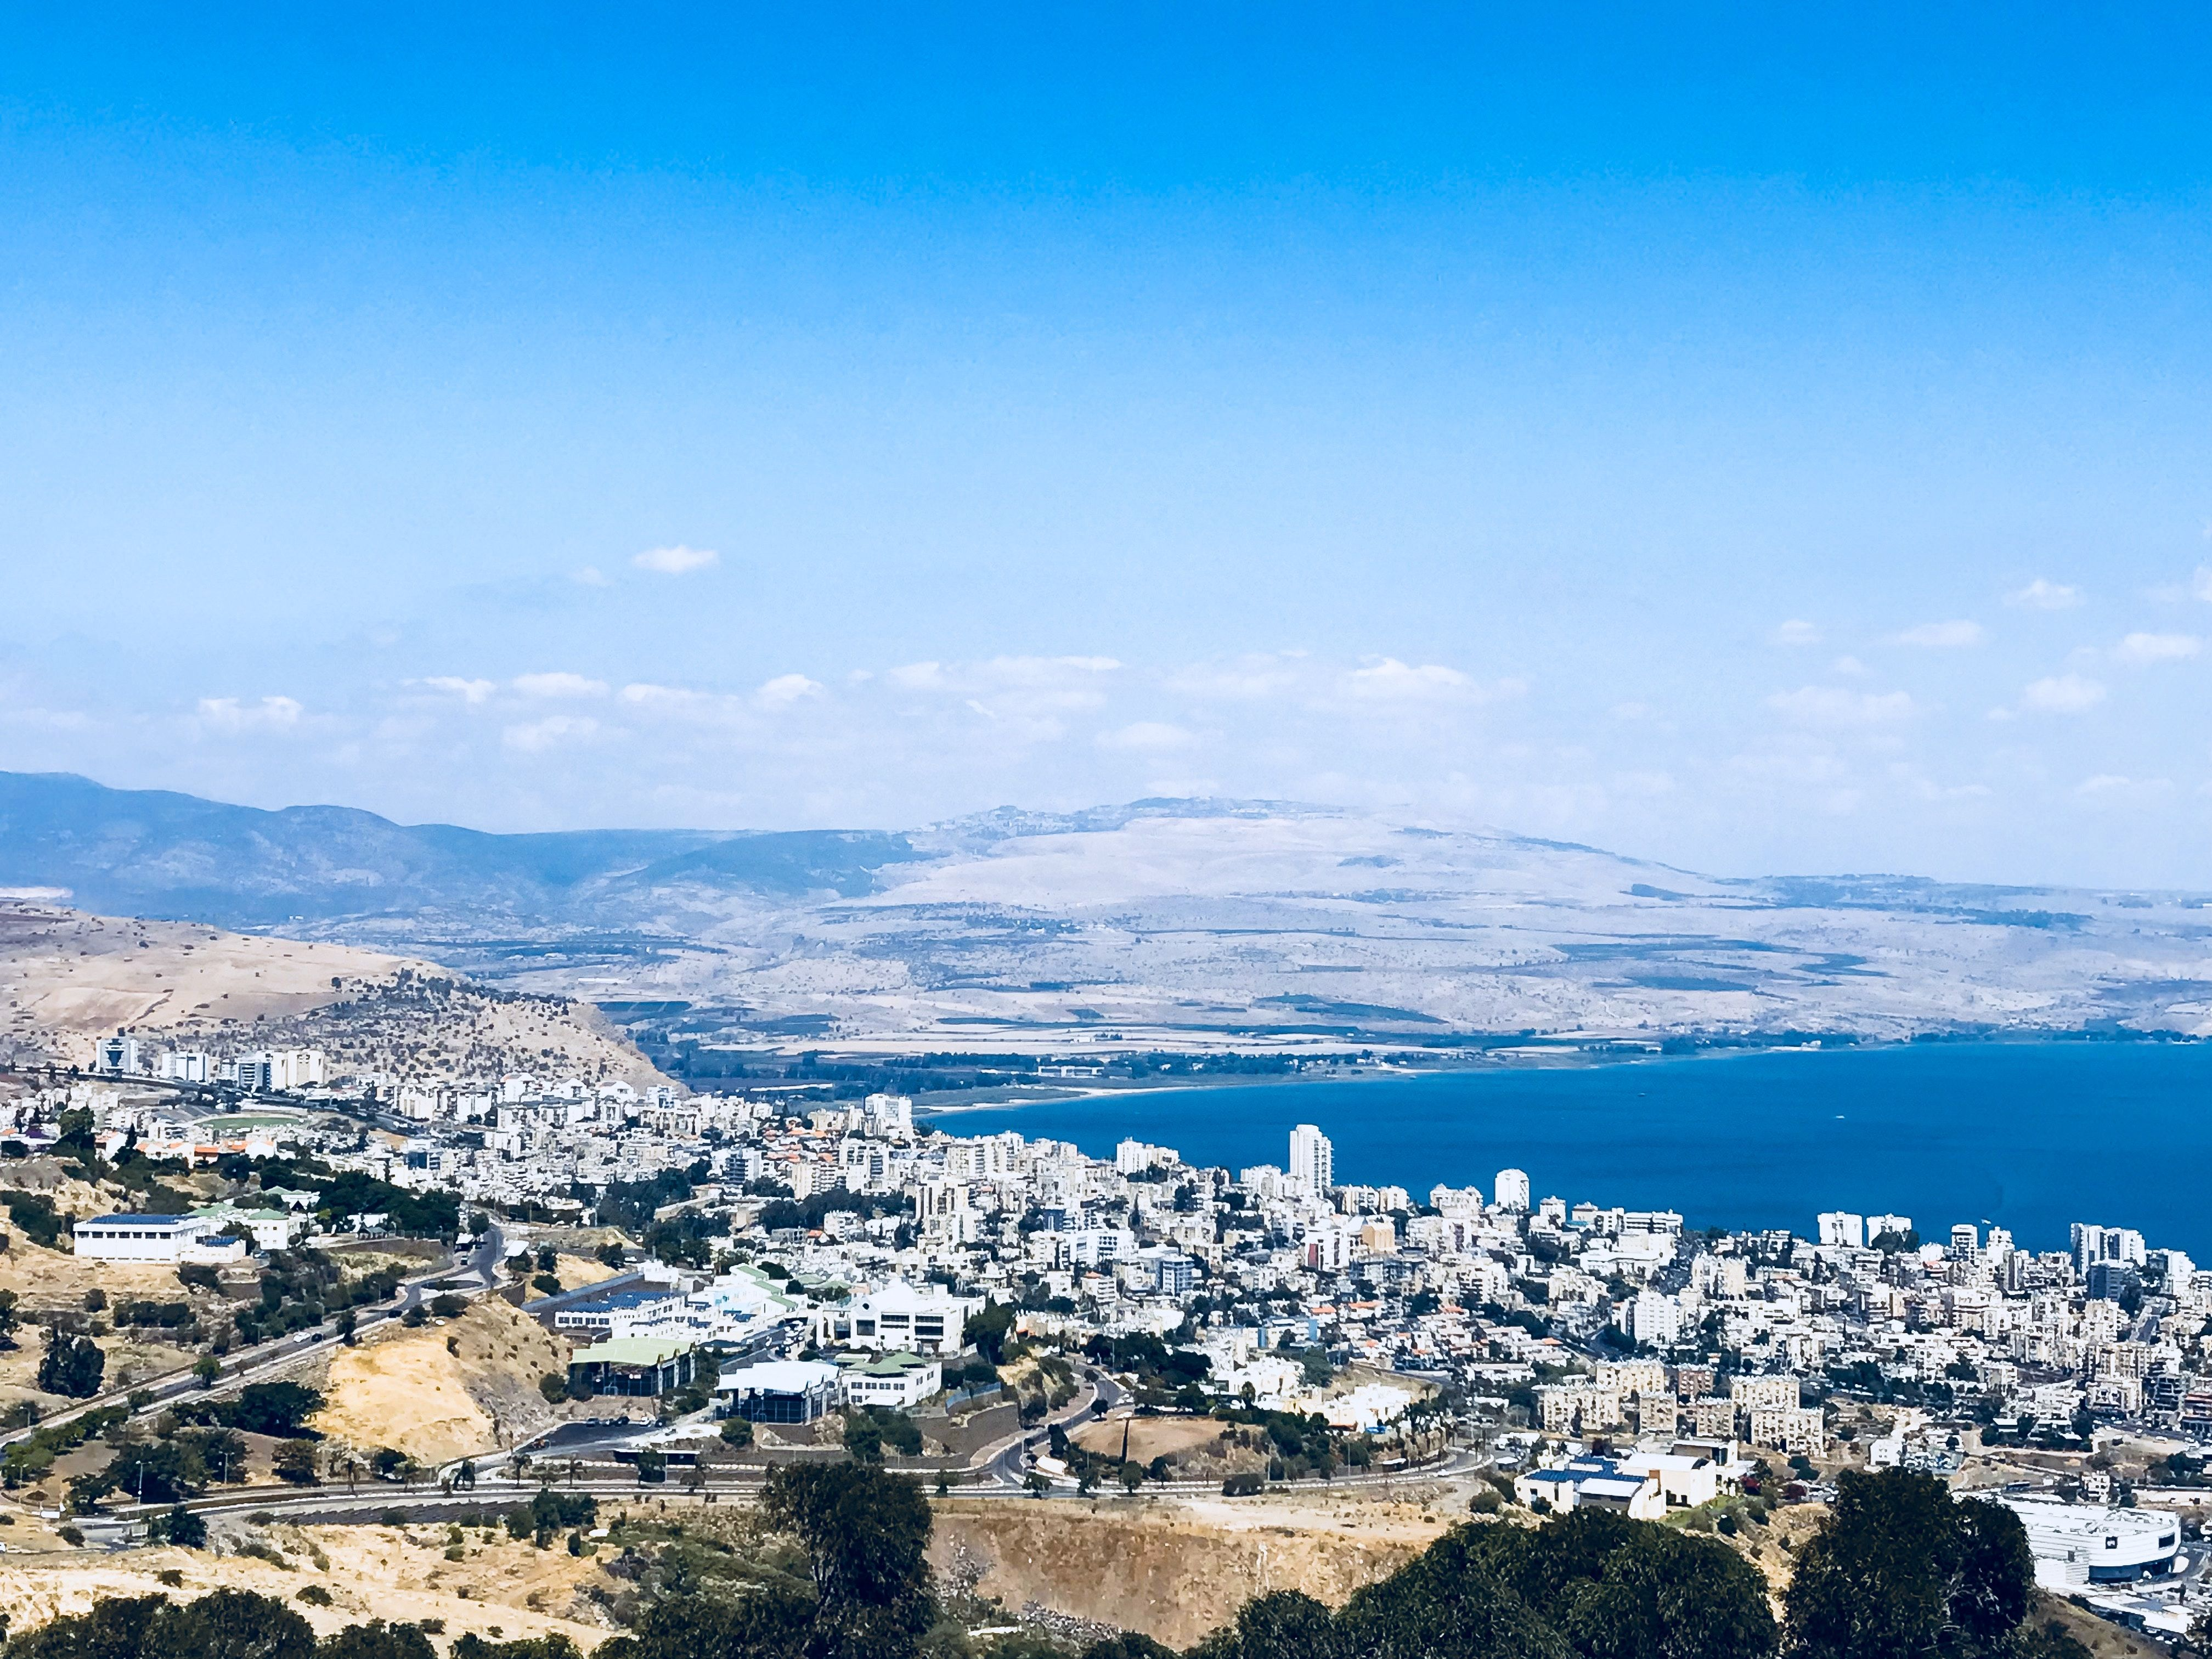 Israeli government to inject half billion shekels into periphery